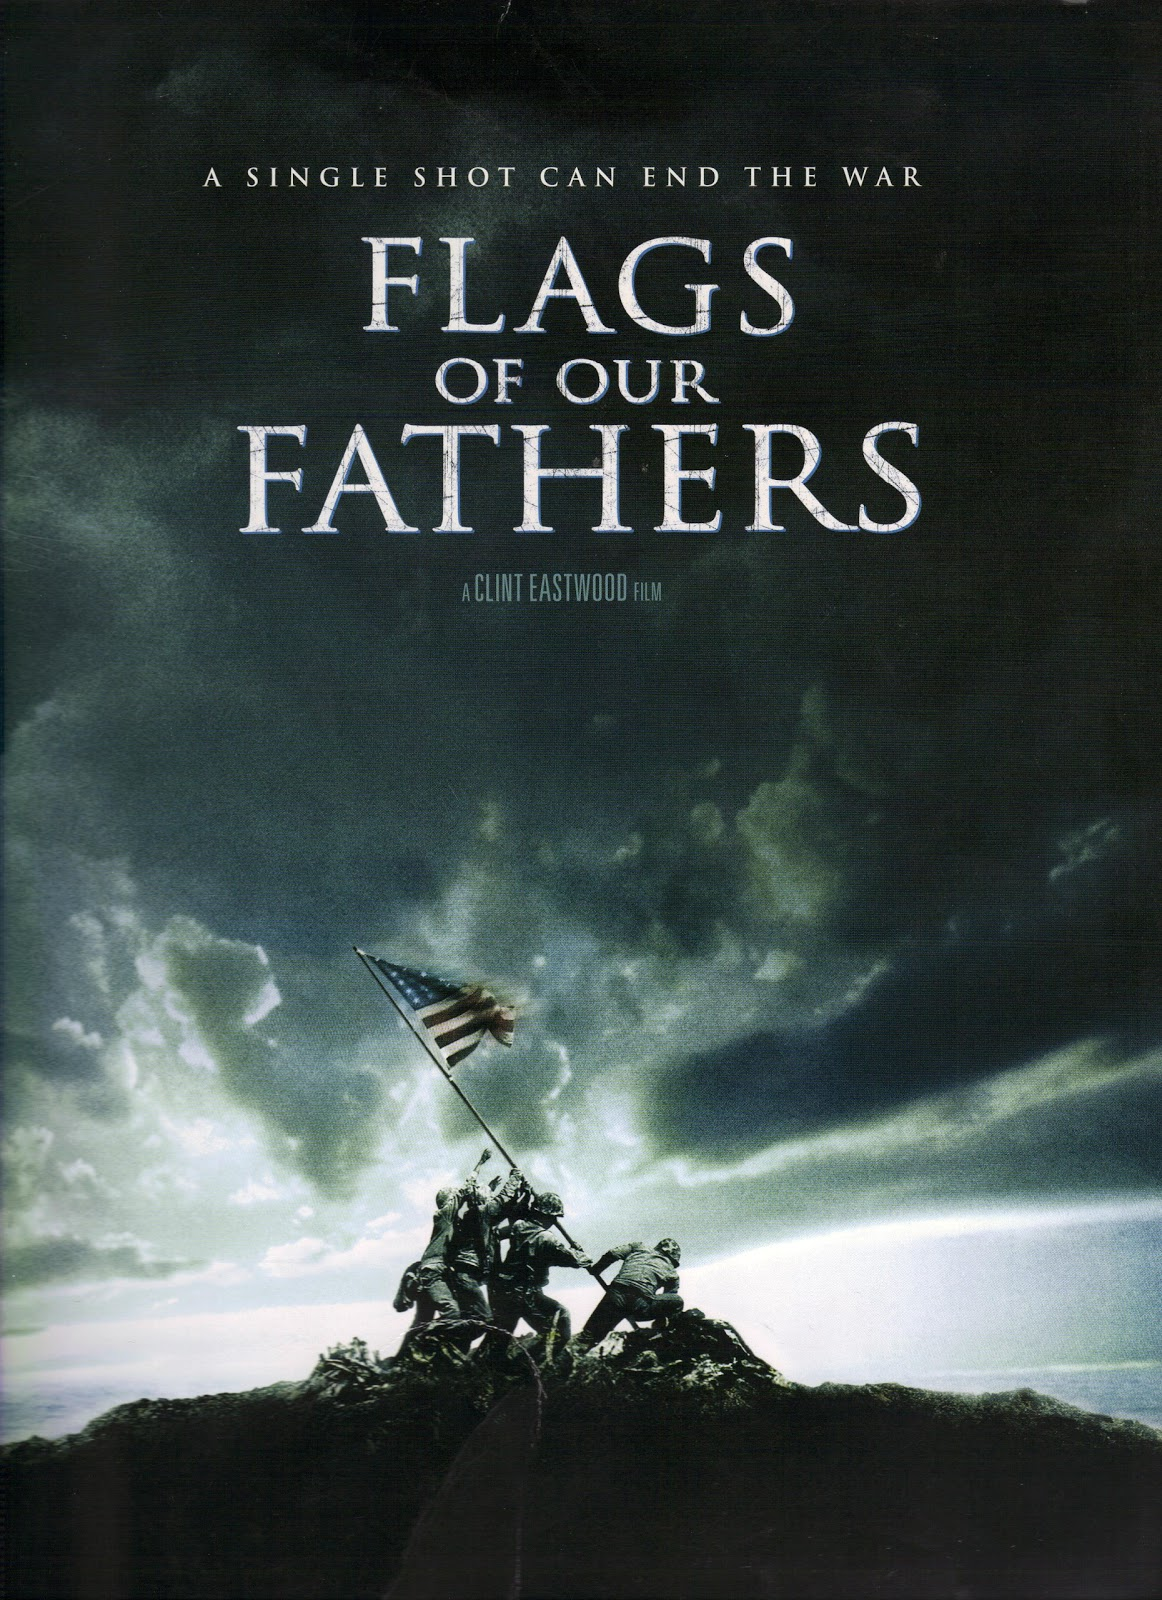 essays on flags of our fathers